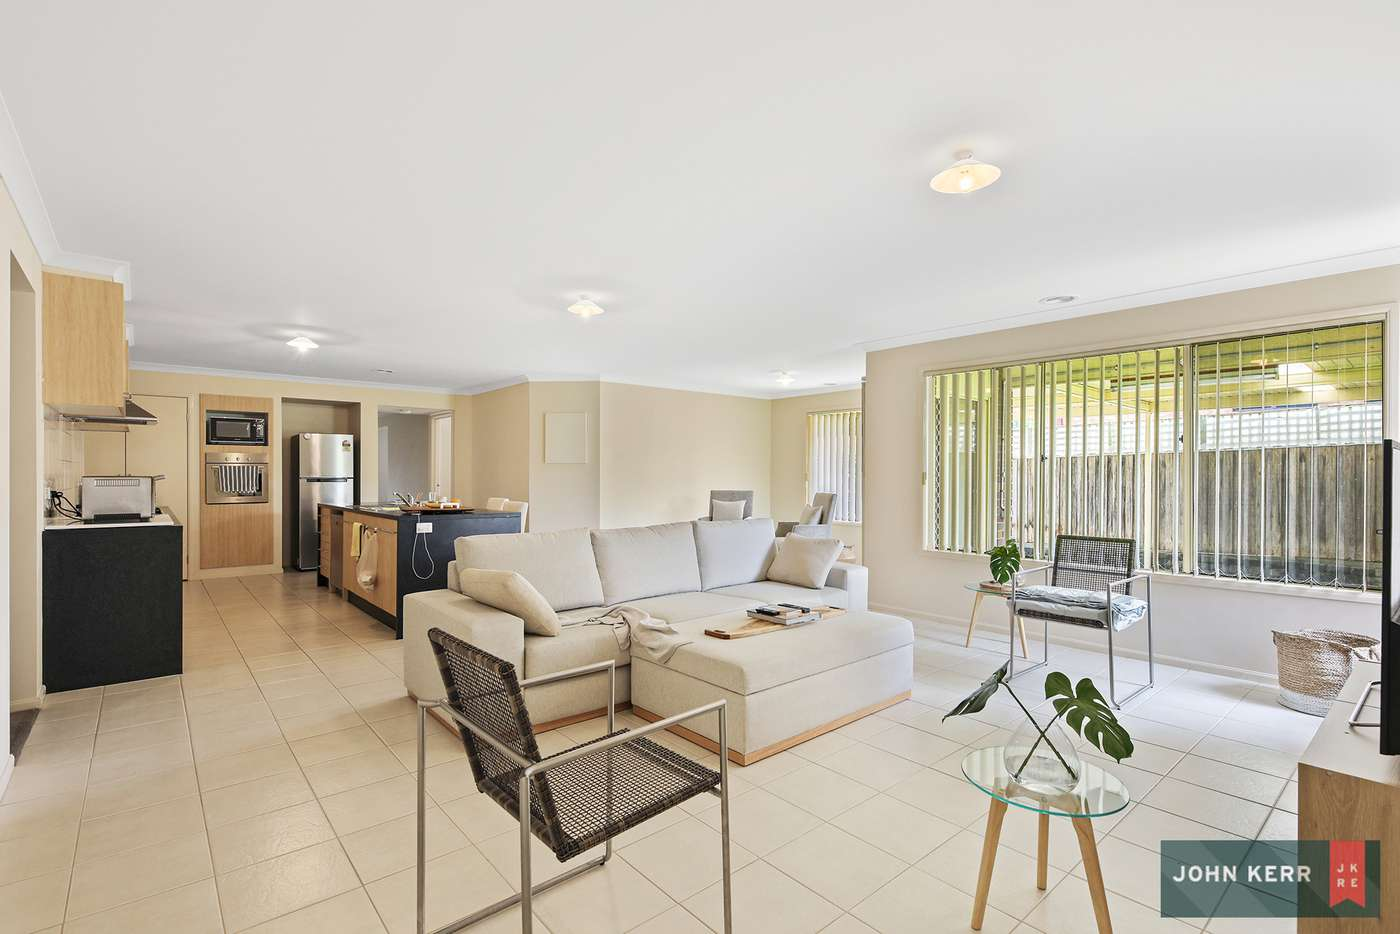 Fifth view of Homely house listing, 4 Howitt Court, Newborough VIC 3825